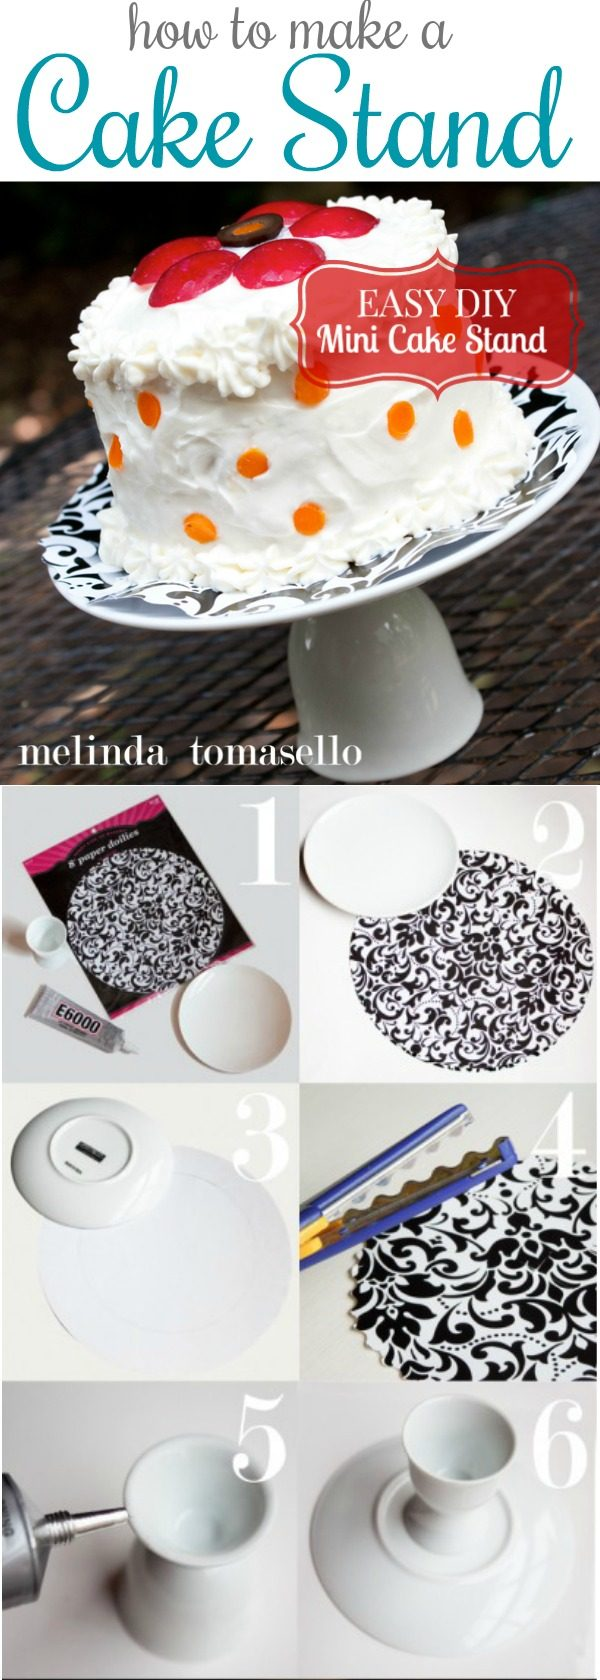 Easy DIY Mini Cake Stand | How to make a cake stand | Easy Craft Idea | Party planning | TodaysCreativeLife.com